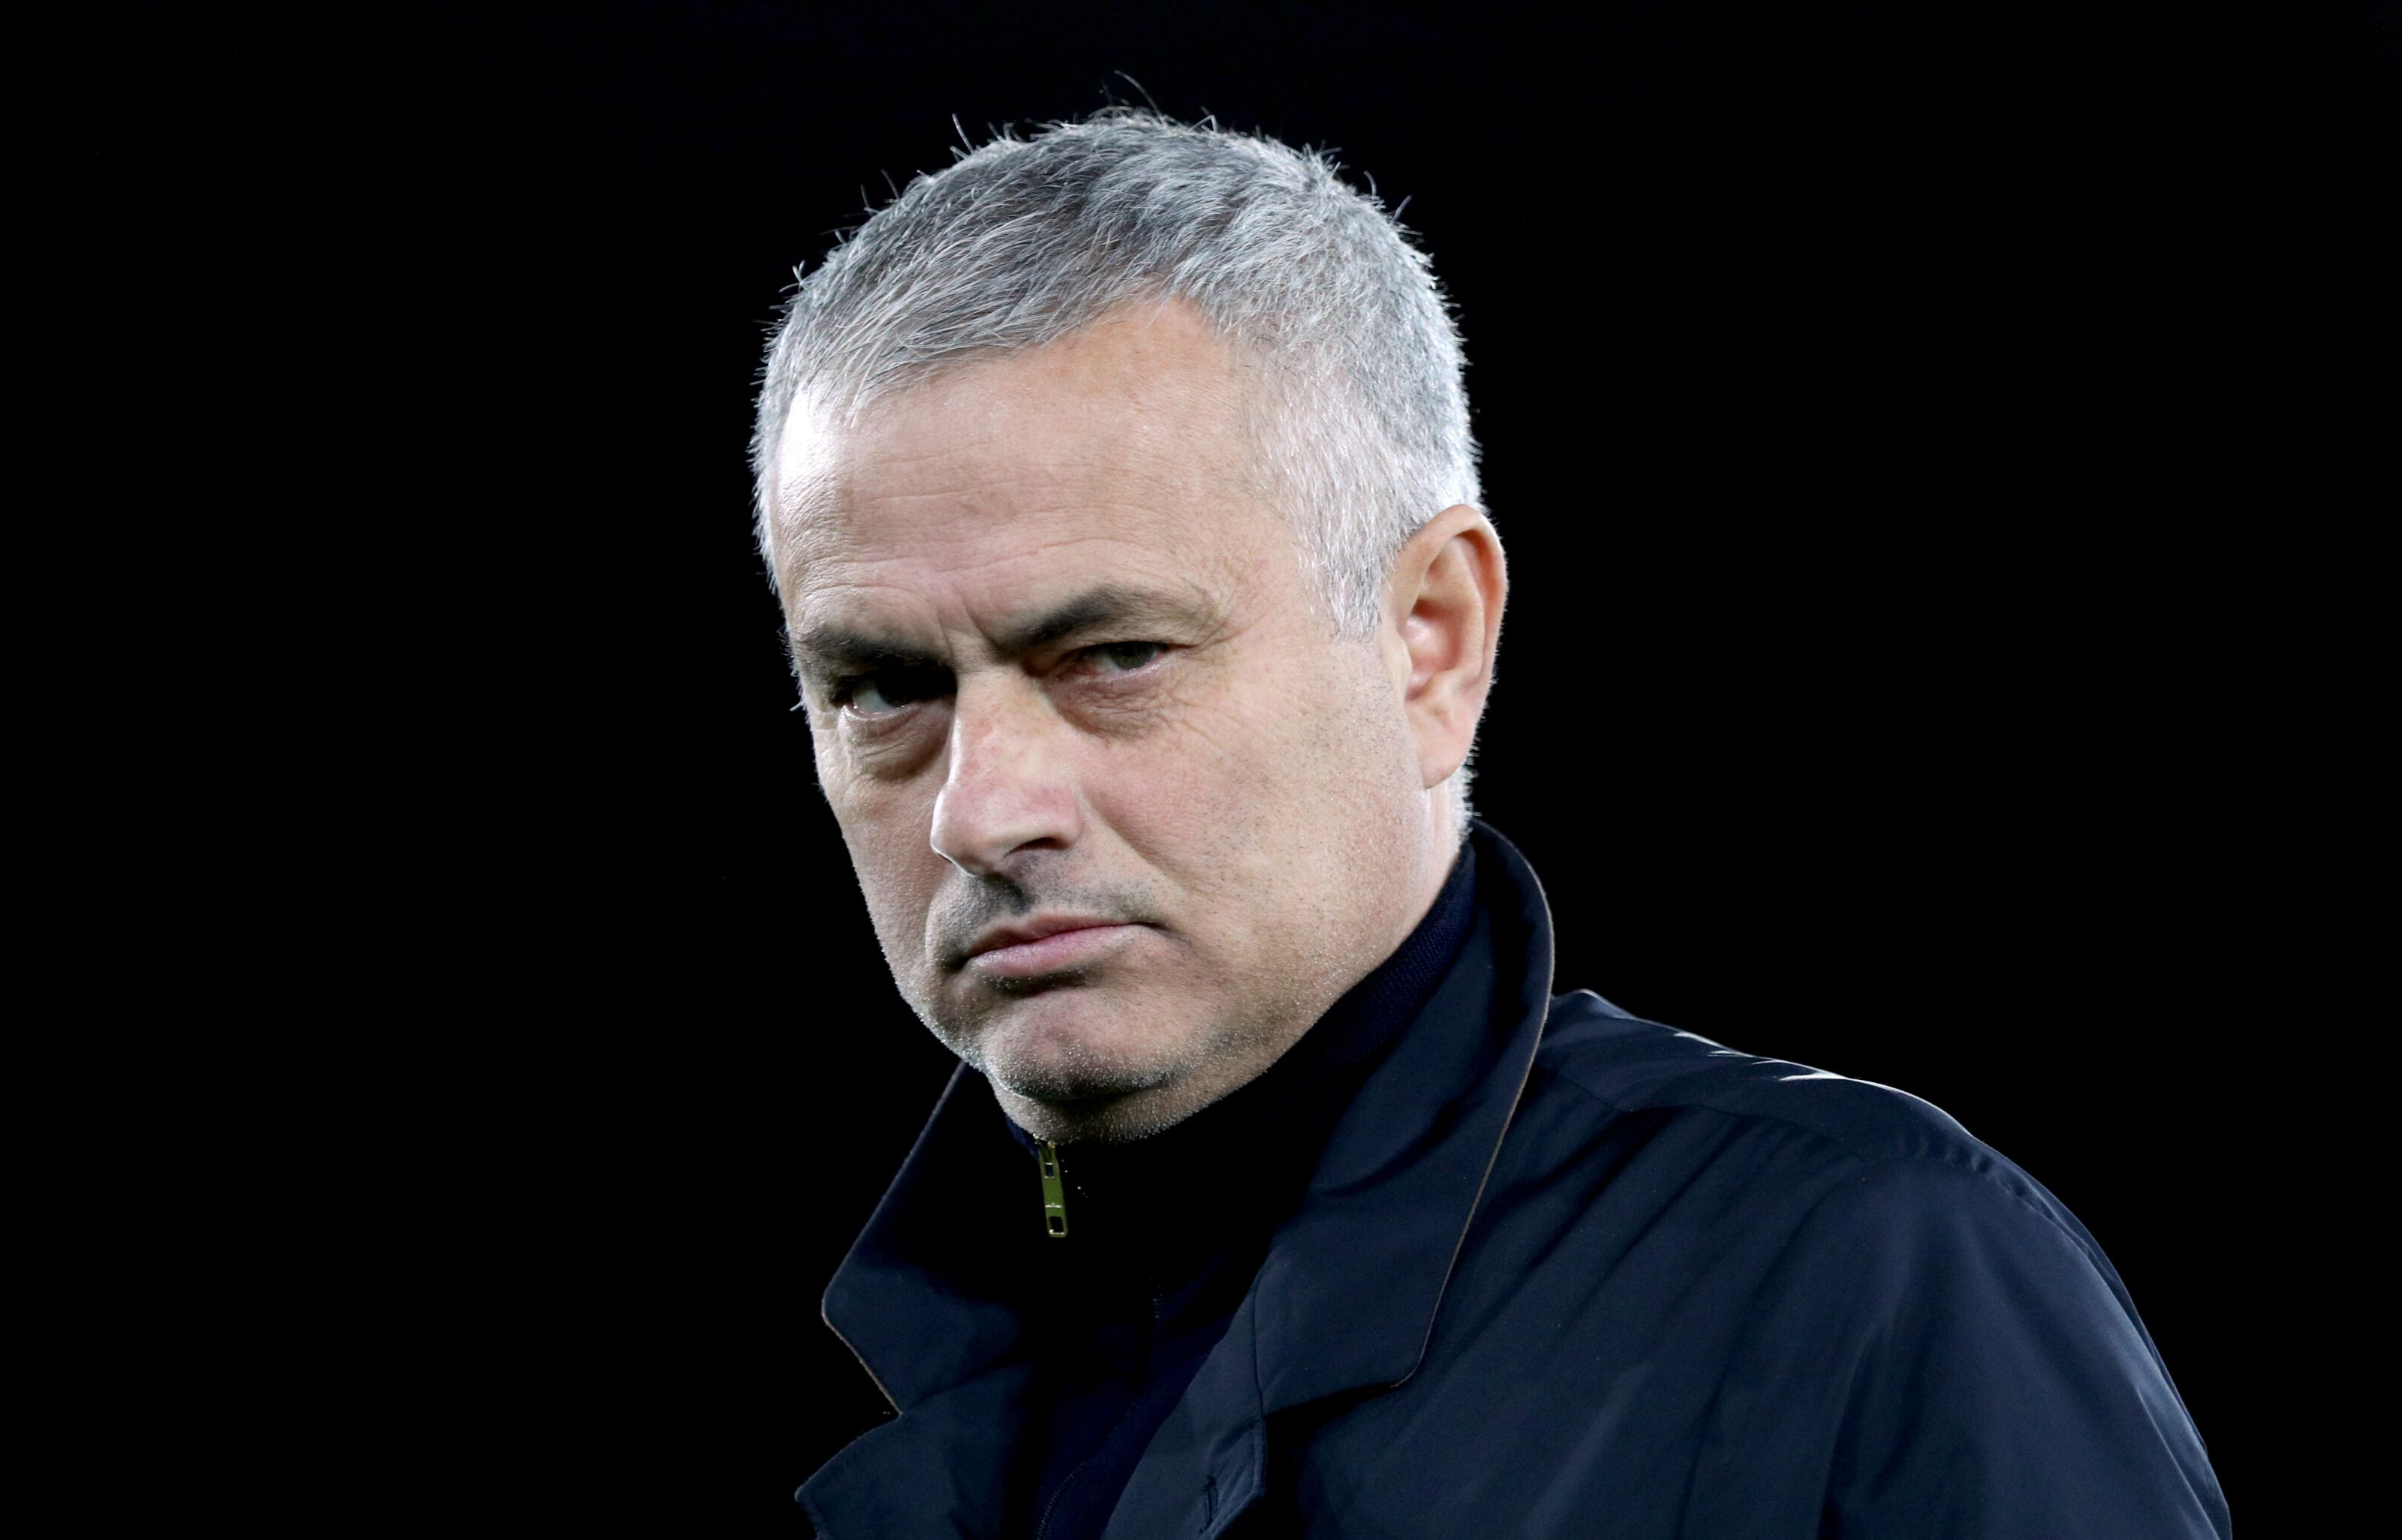 Jose Mourinho will get rid of 7 regulars if Real Madrid re-appoint him